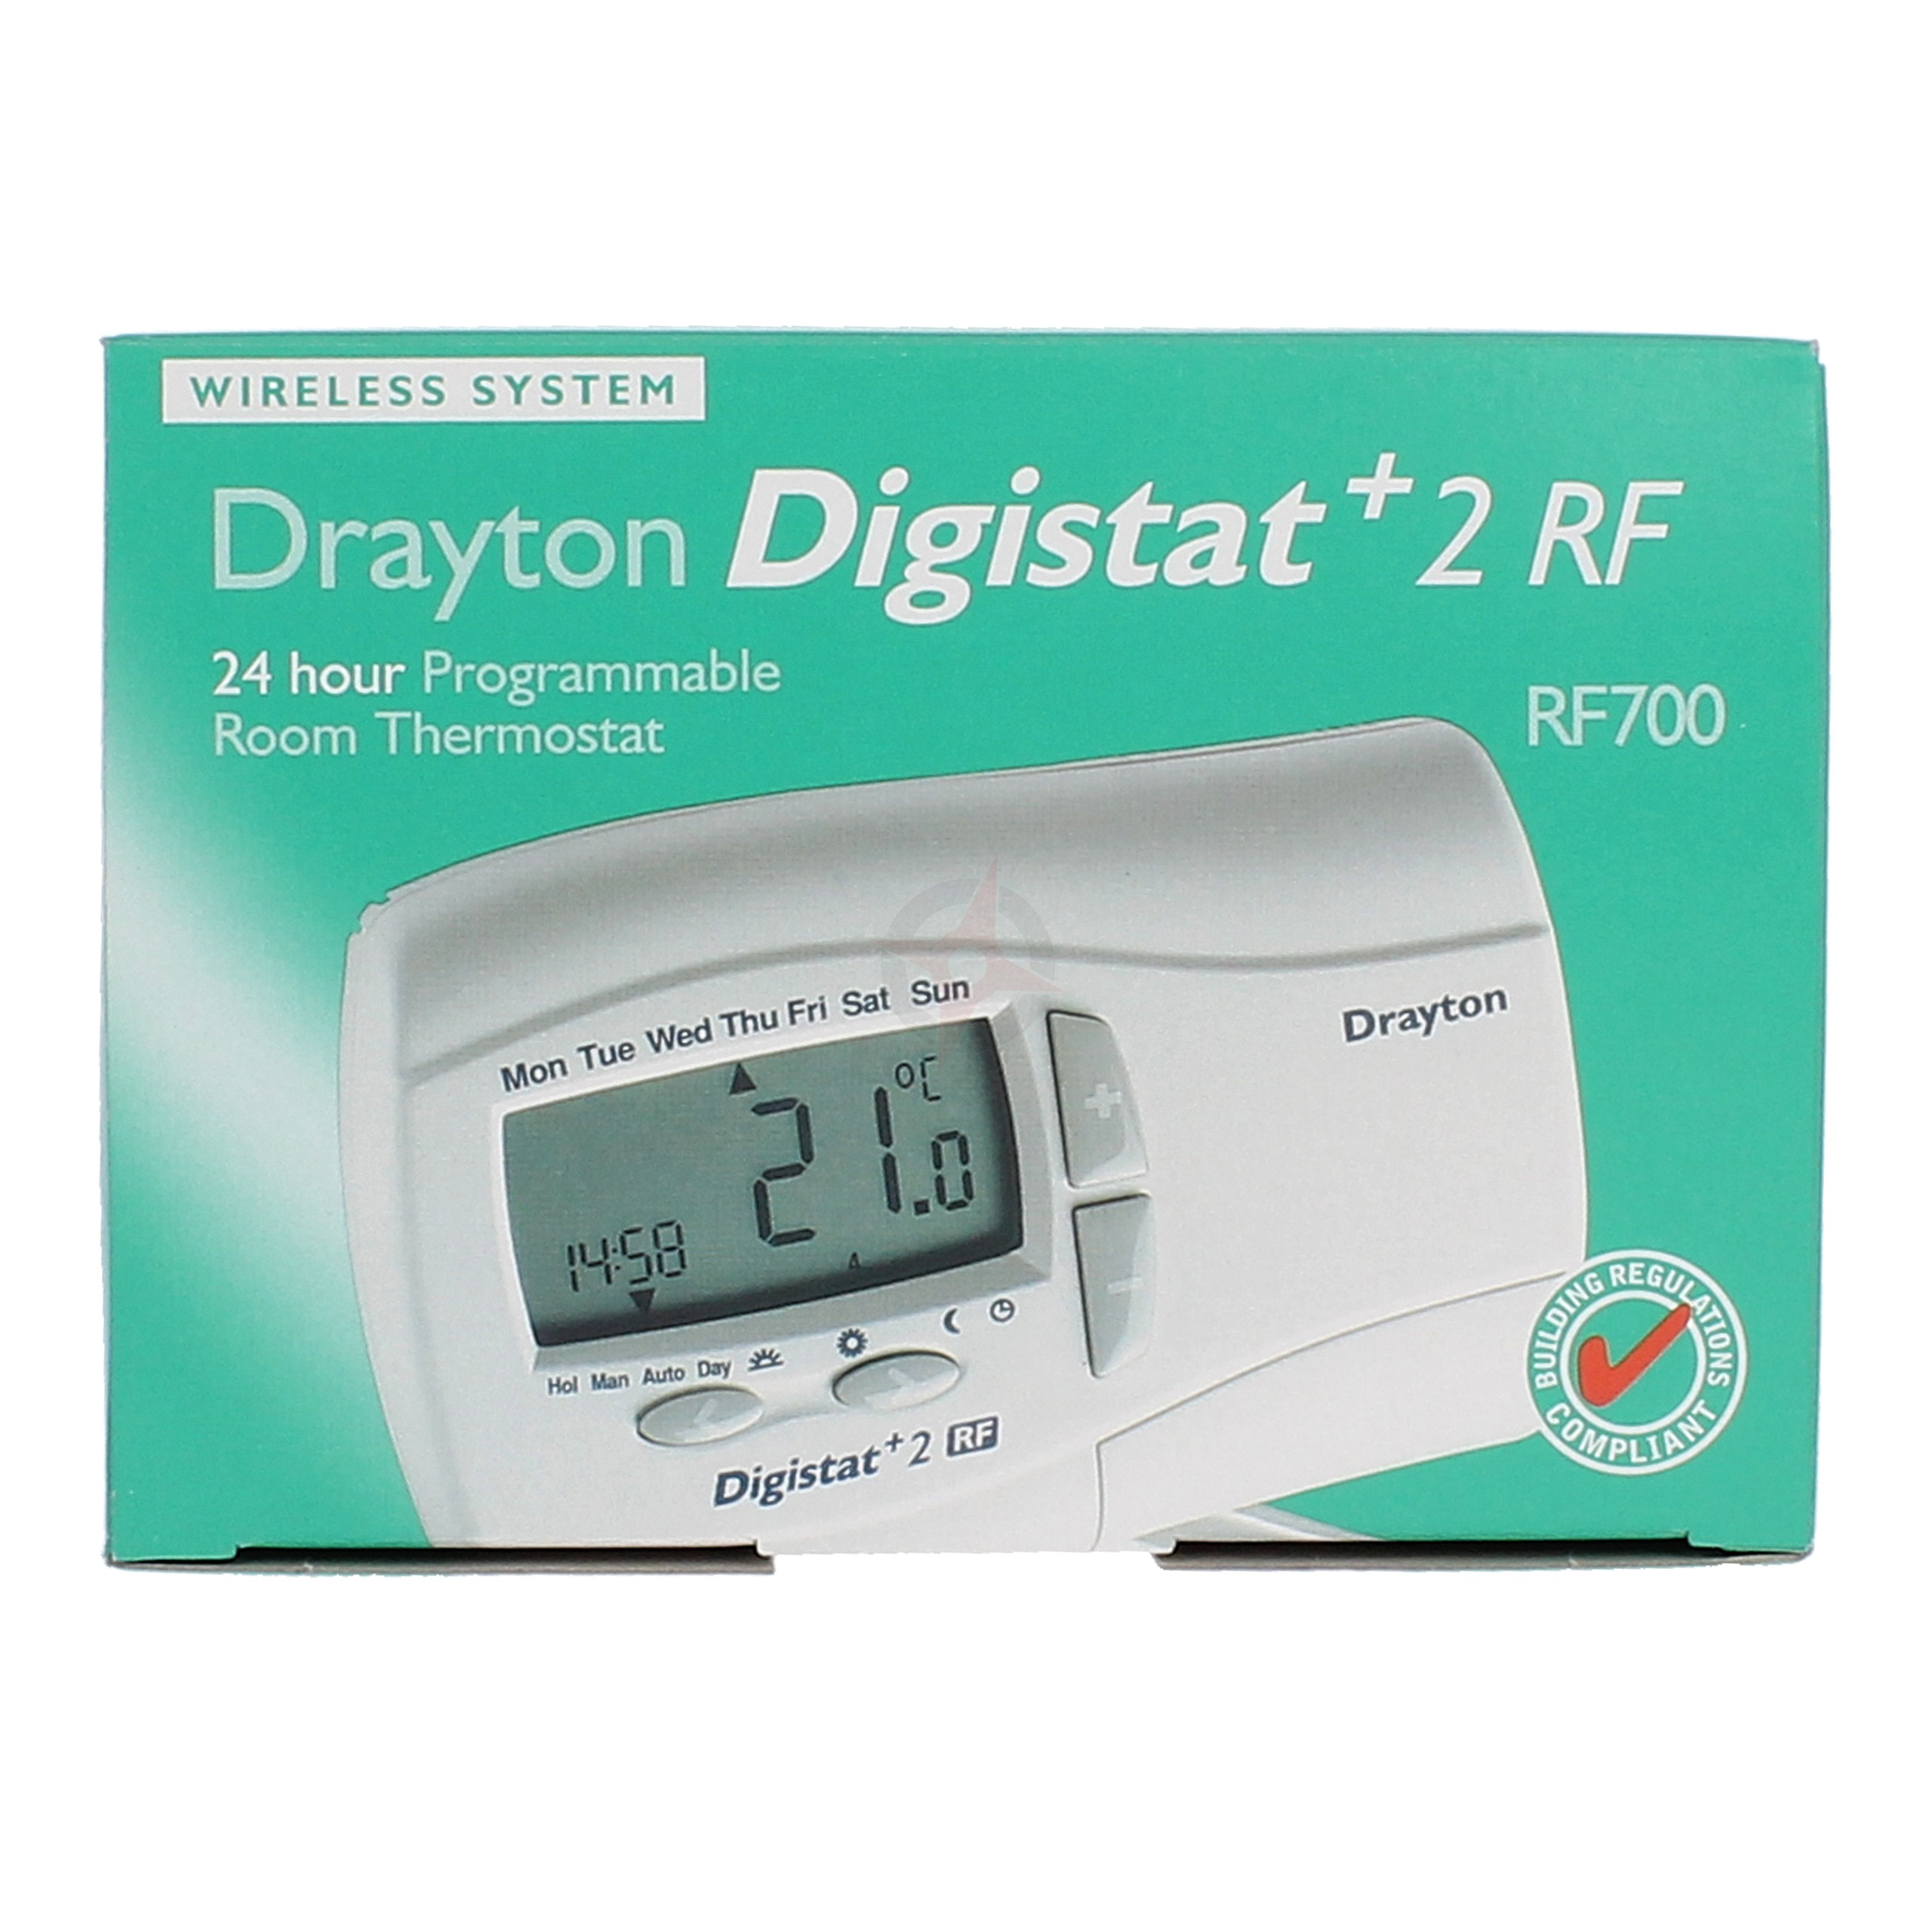 Drayton 24 Hour Programmable Room Thermostat Digistat+2RF